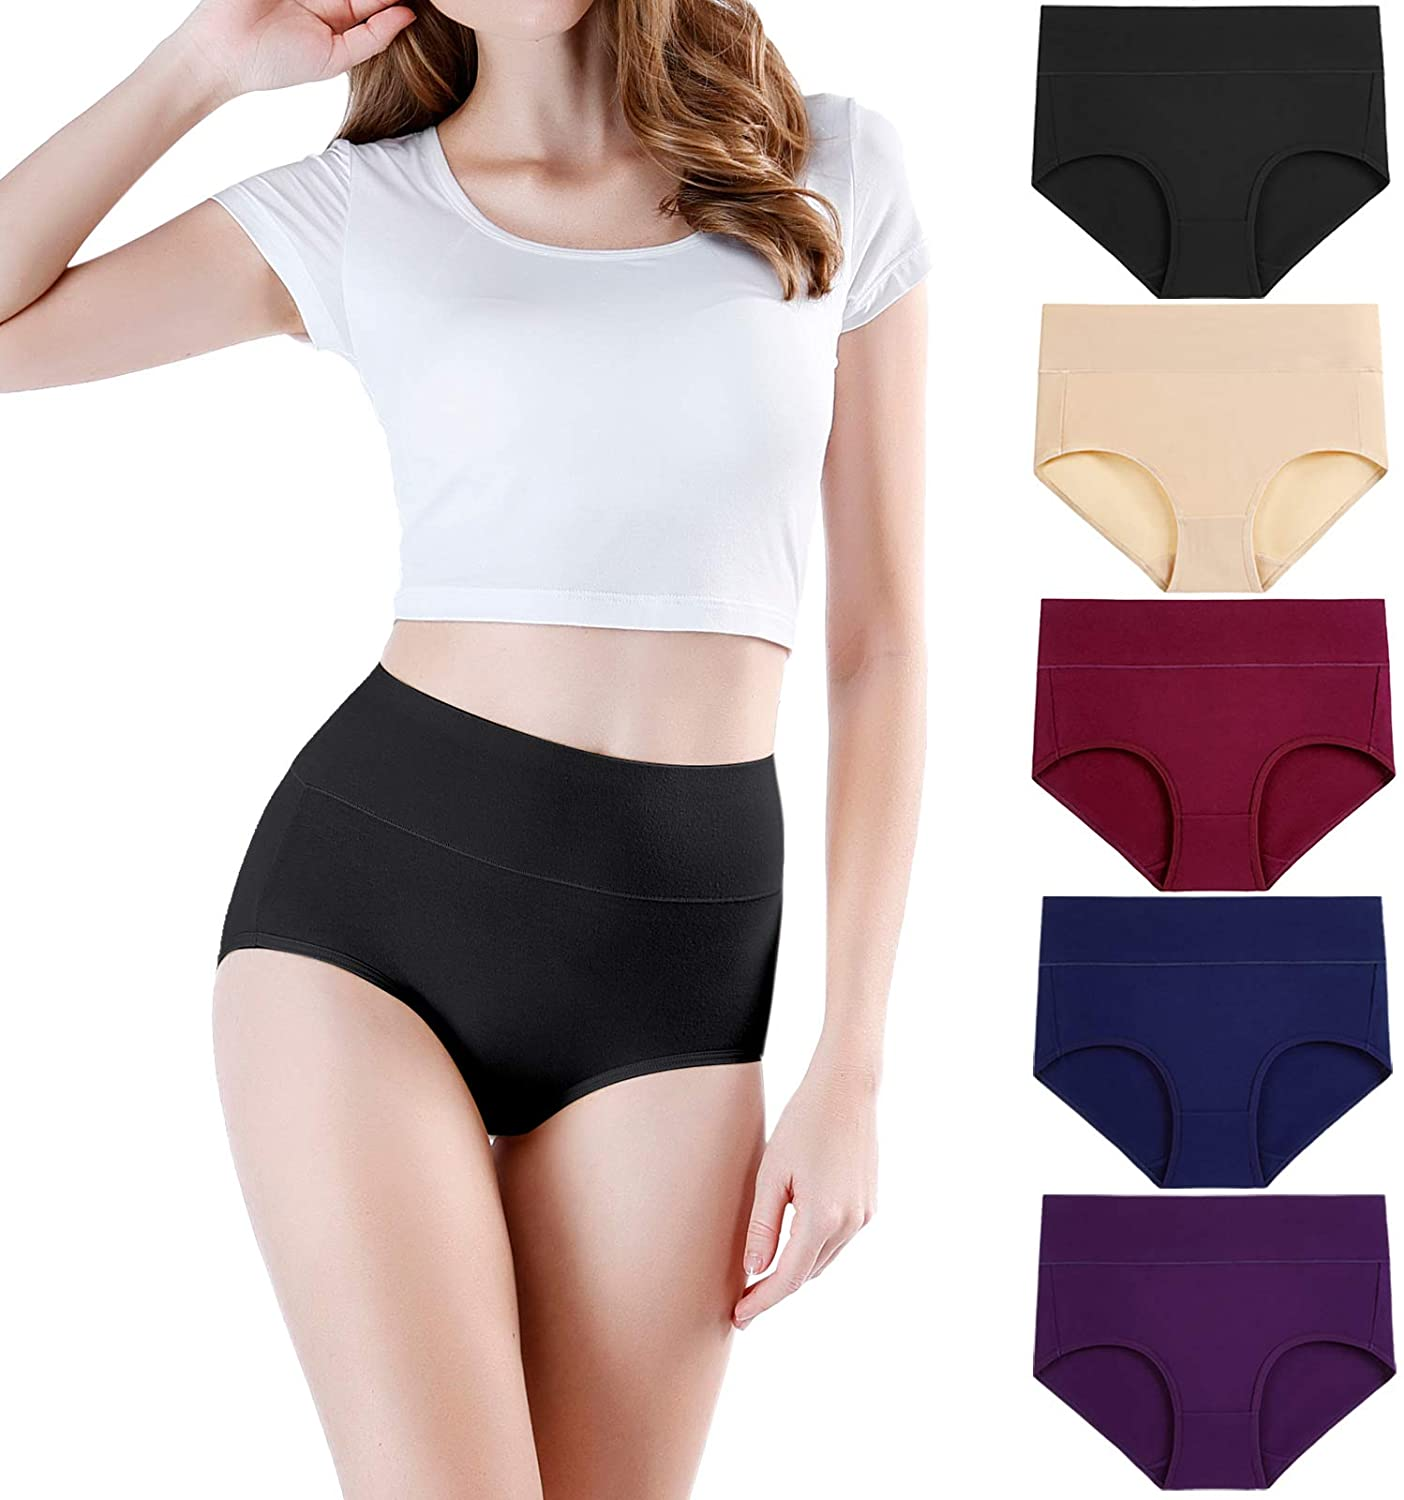 wirarpa Women's High Waisted Cotton Underwear Soft Full Briefs Ladies Breathable Panties Multipack